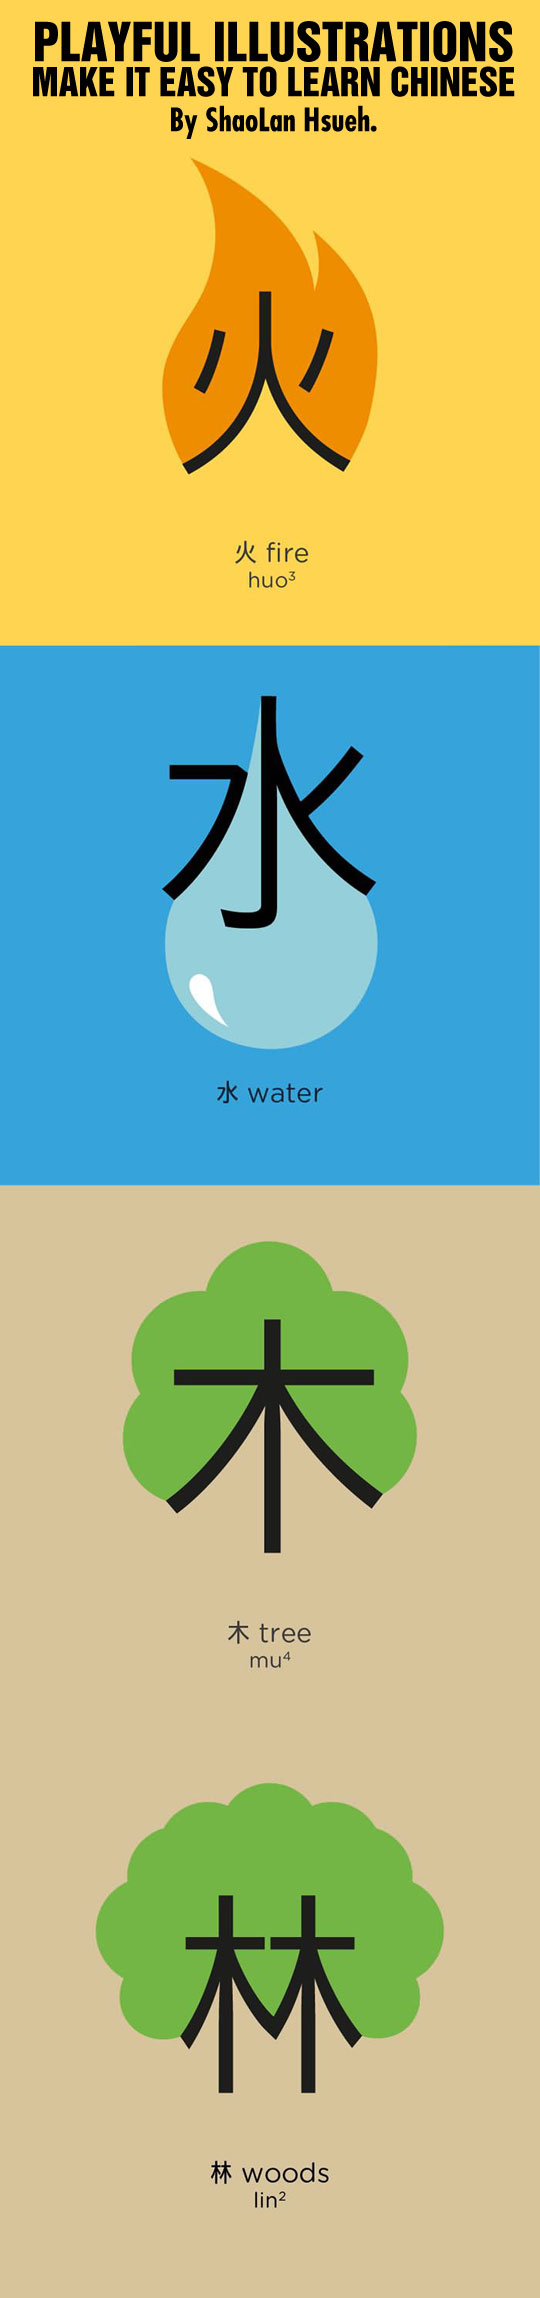 Playful illustrations make it easy to learn Chinese...